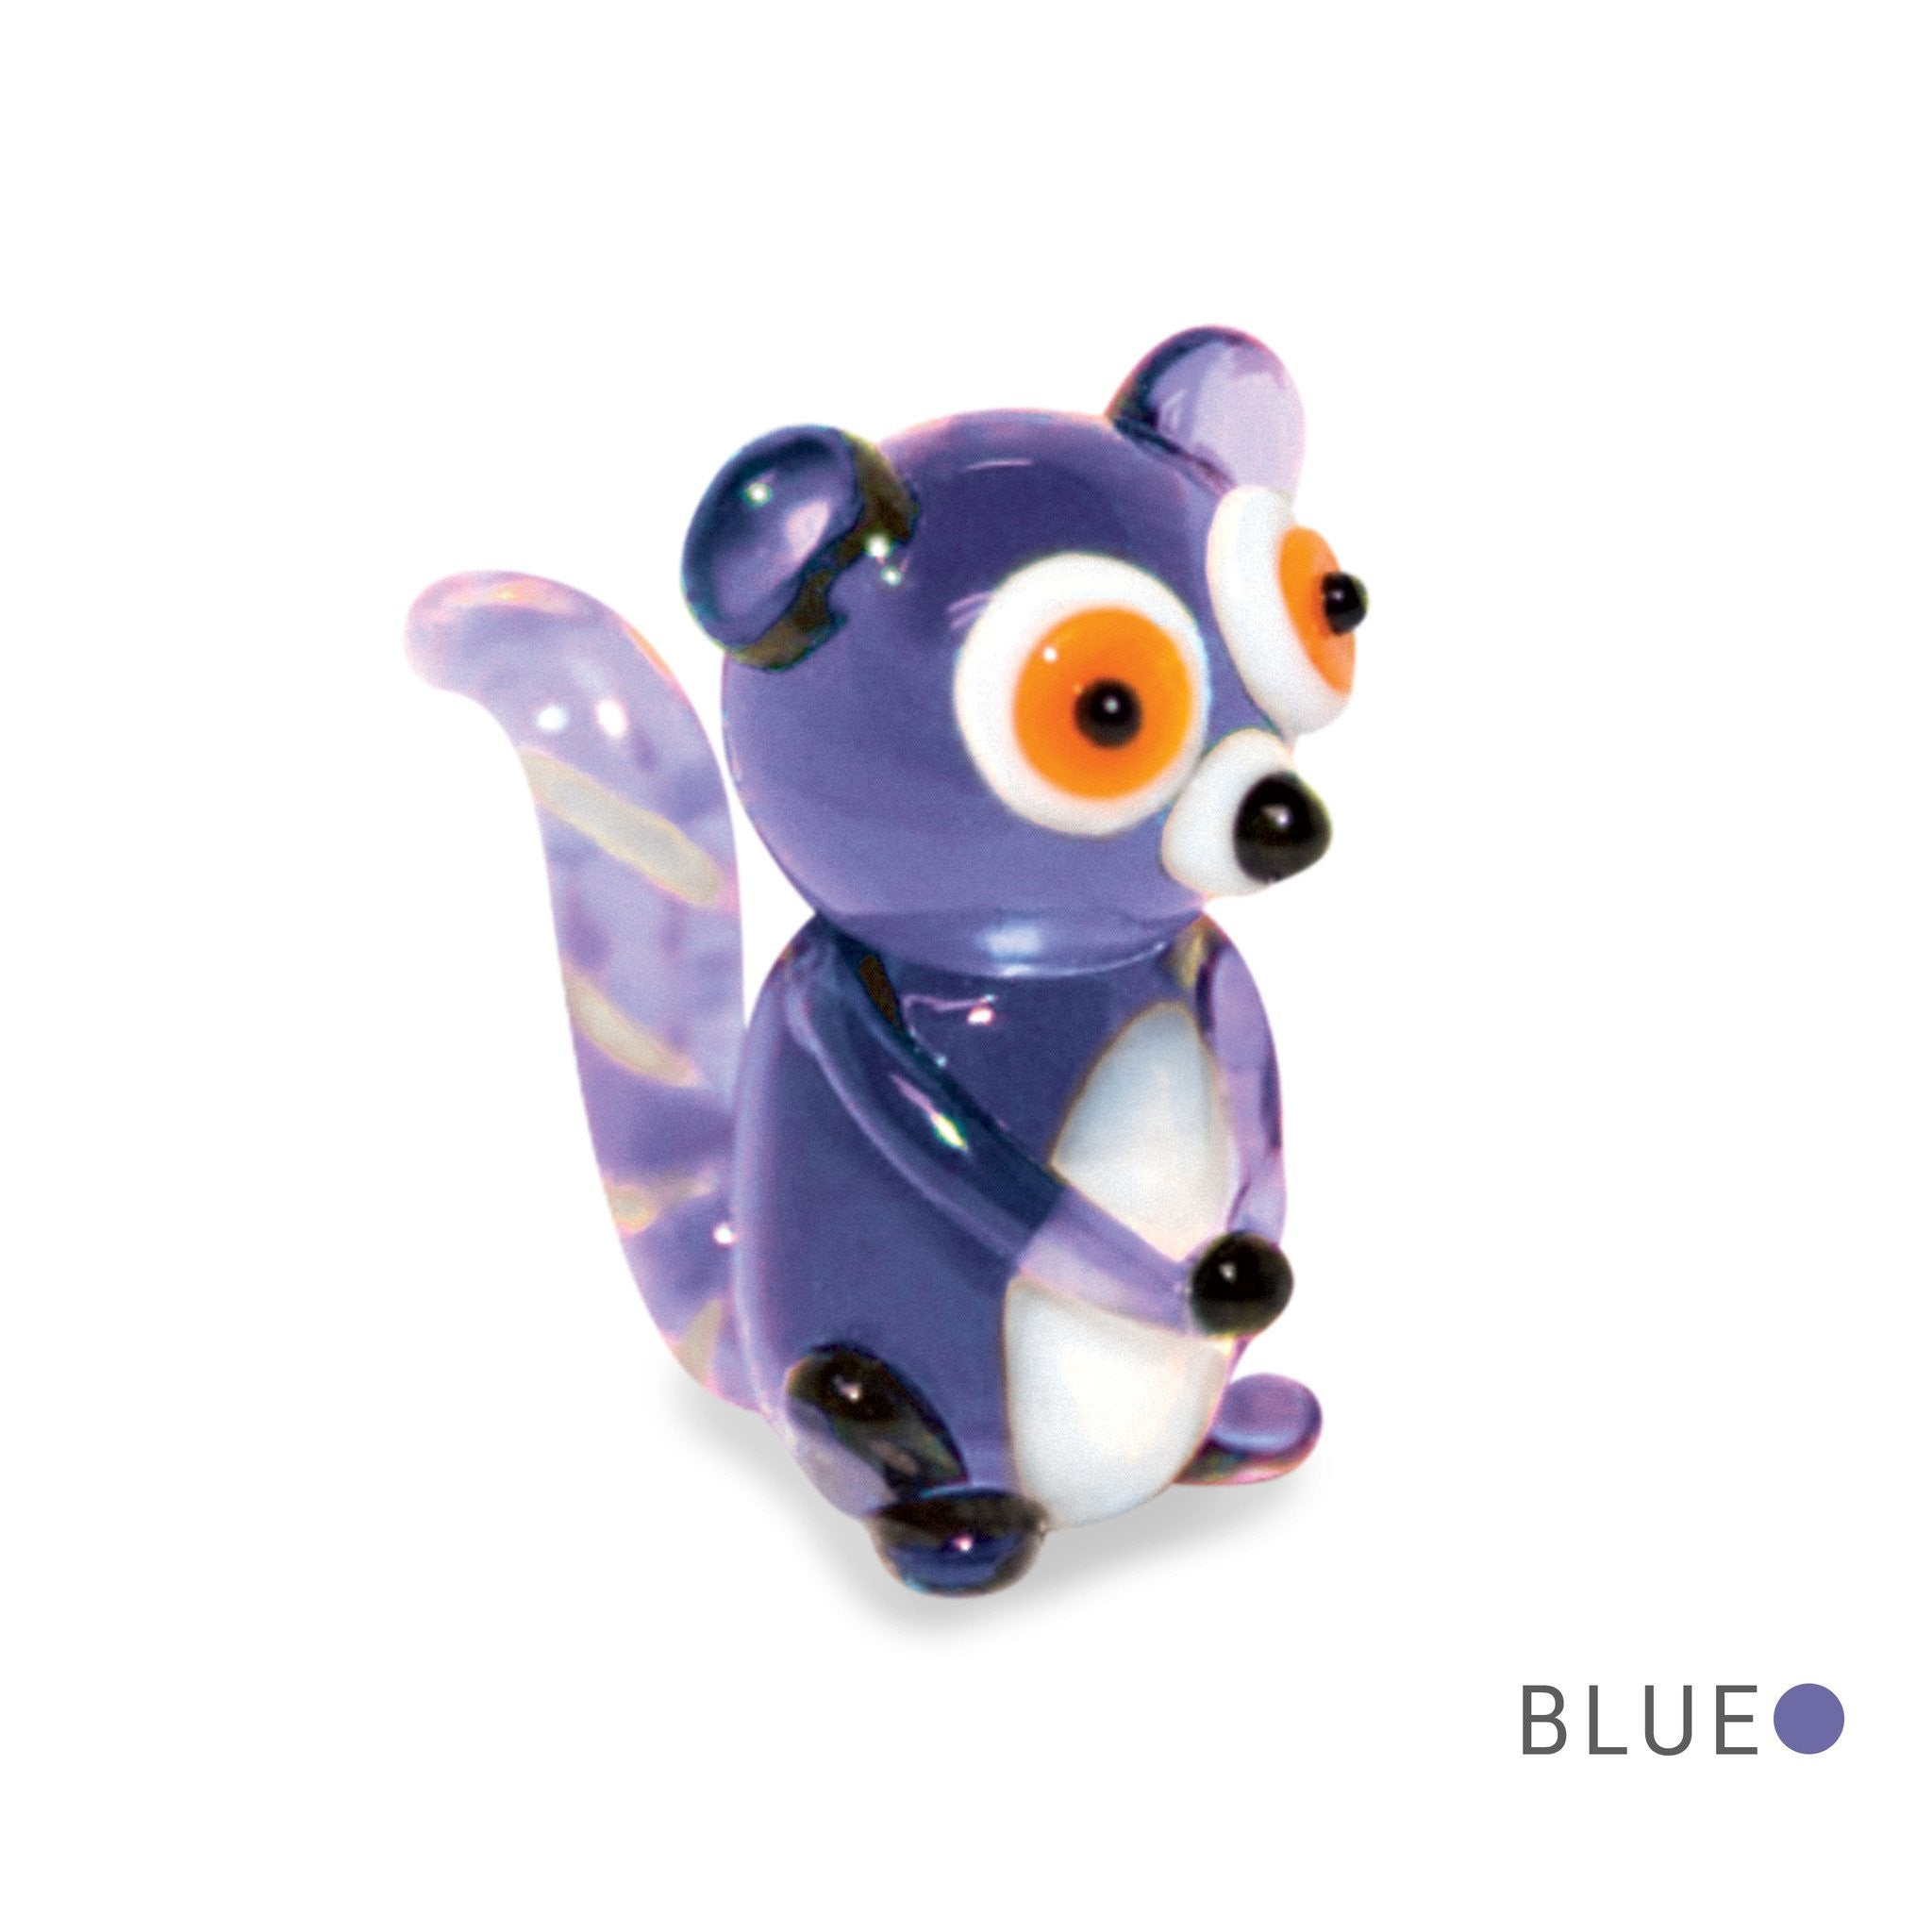 Bebe the Bush Baby (in Tynies Collector's Frame) miniature glass figurines